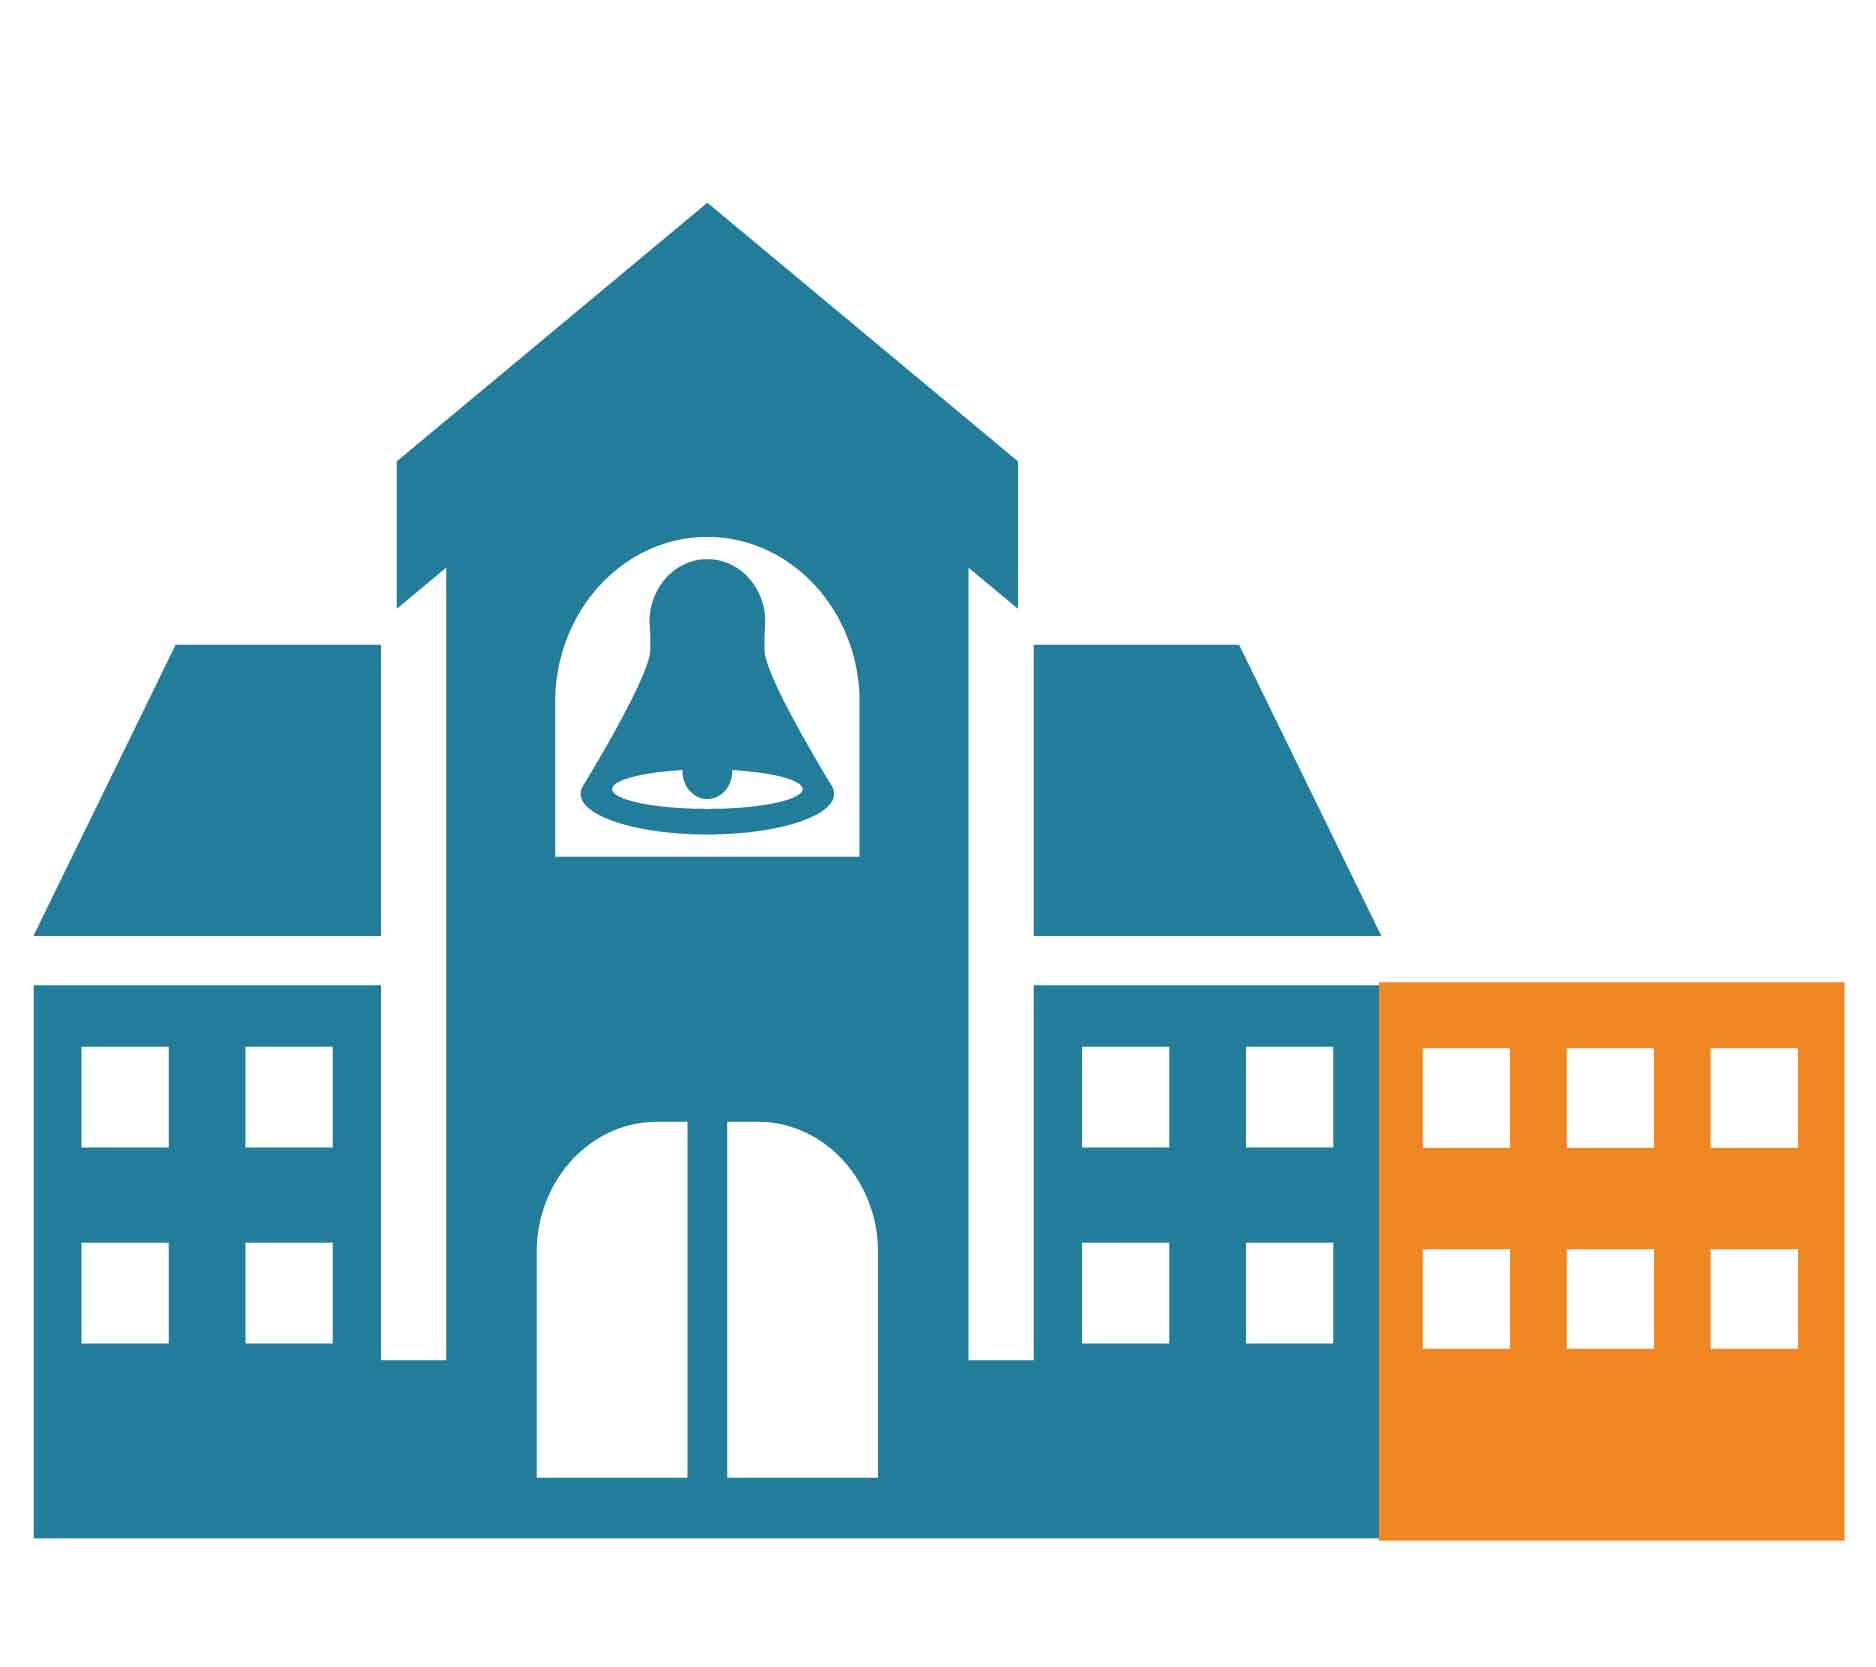 School icon in blue with orange addition